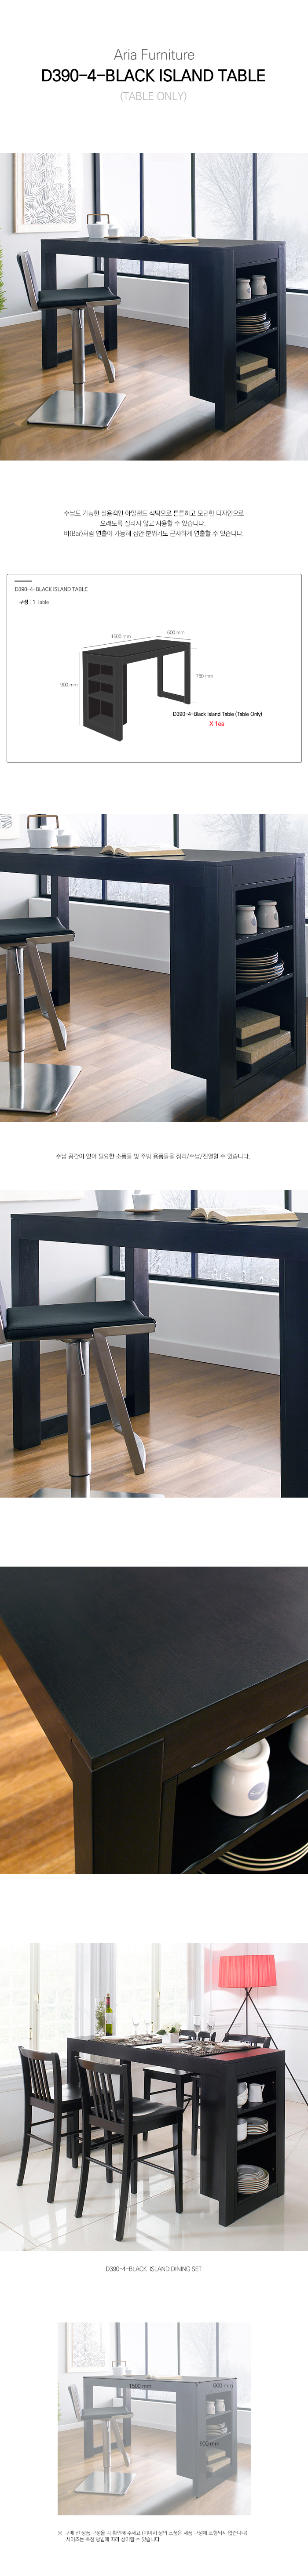 D390-4-Black_Island_Table_180510.jpg